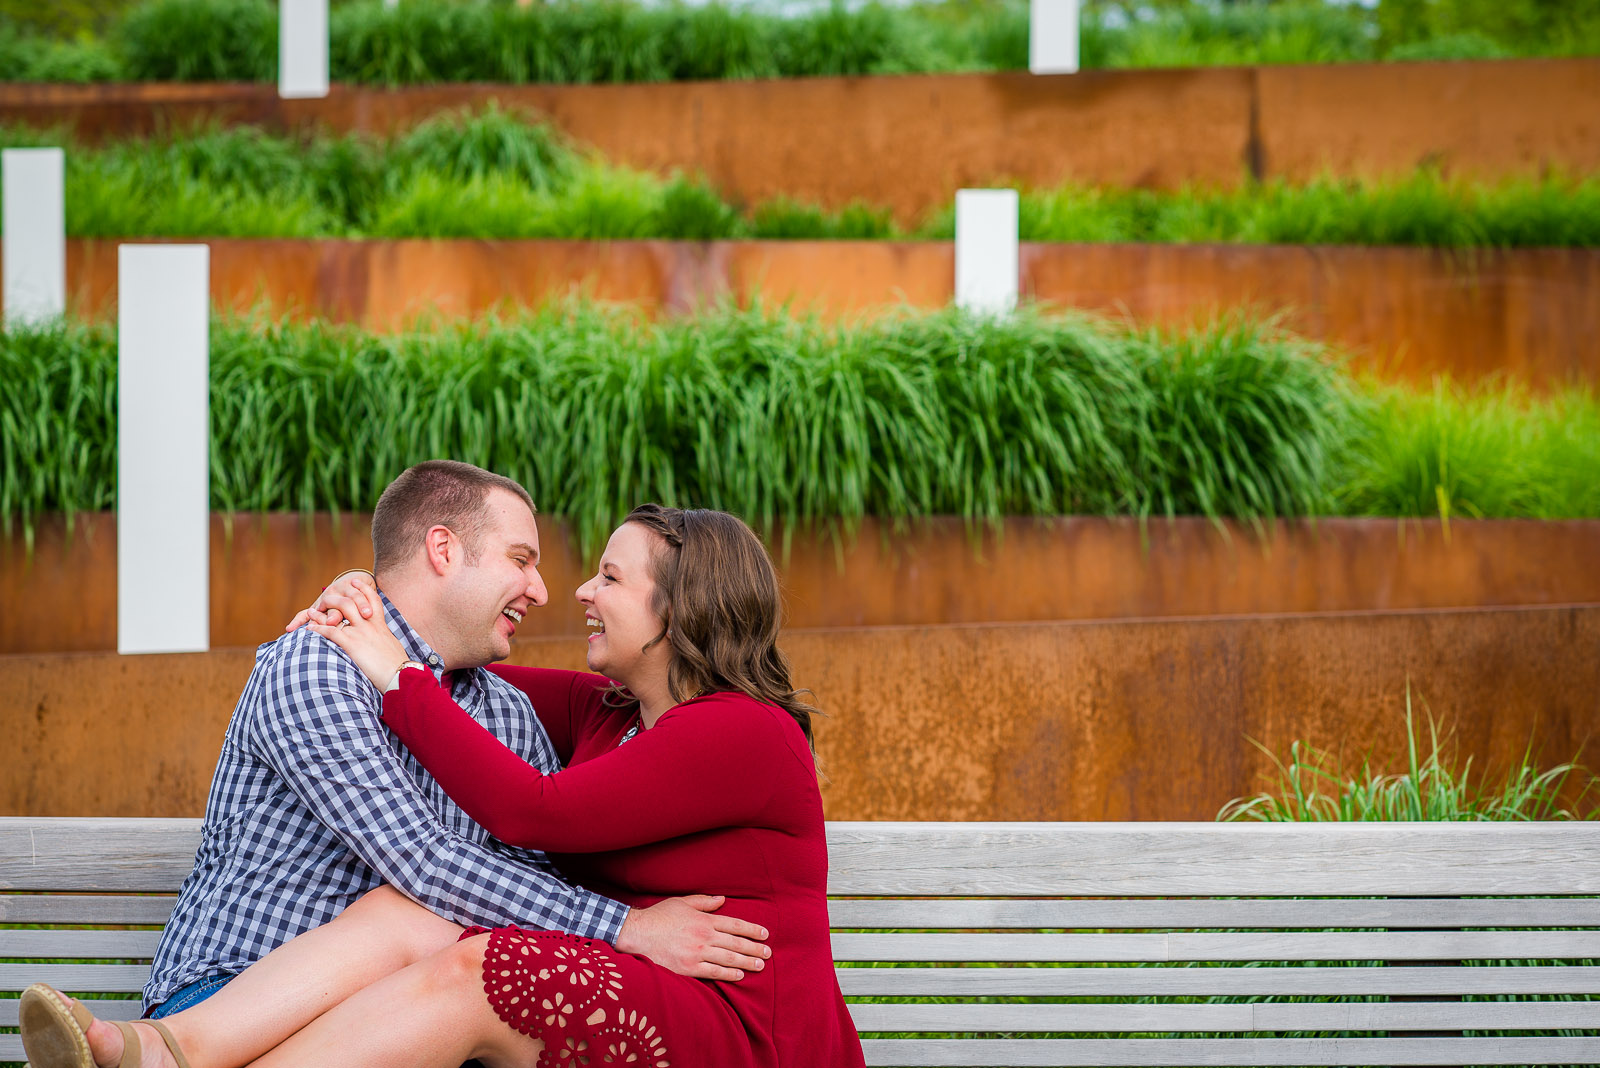 Eric_and_Christy_Photography_Blog_Stacey_Geoff_Engagement-13